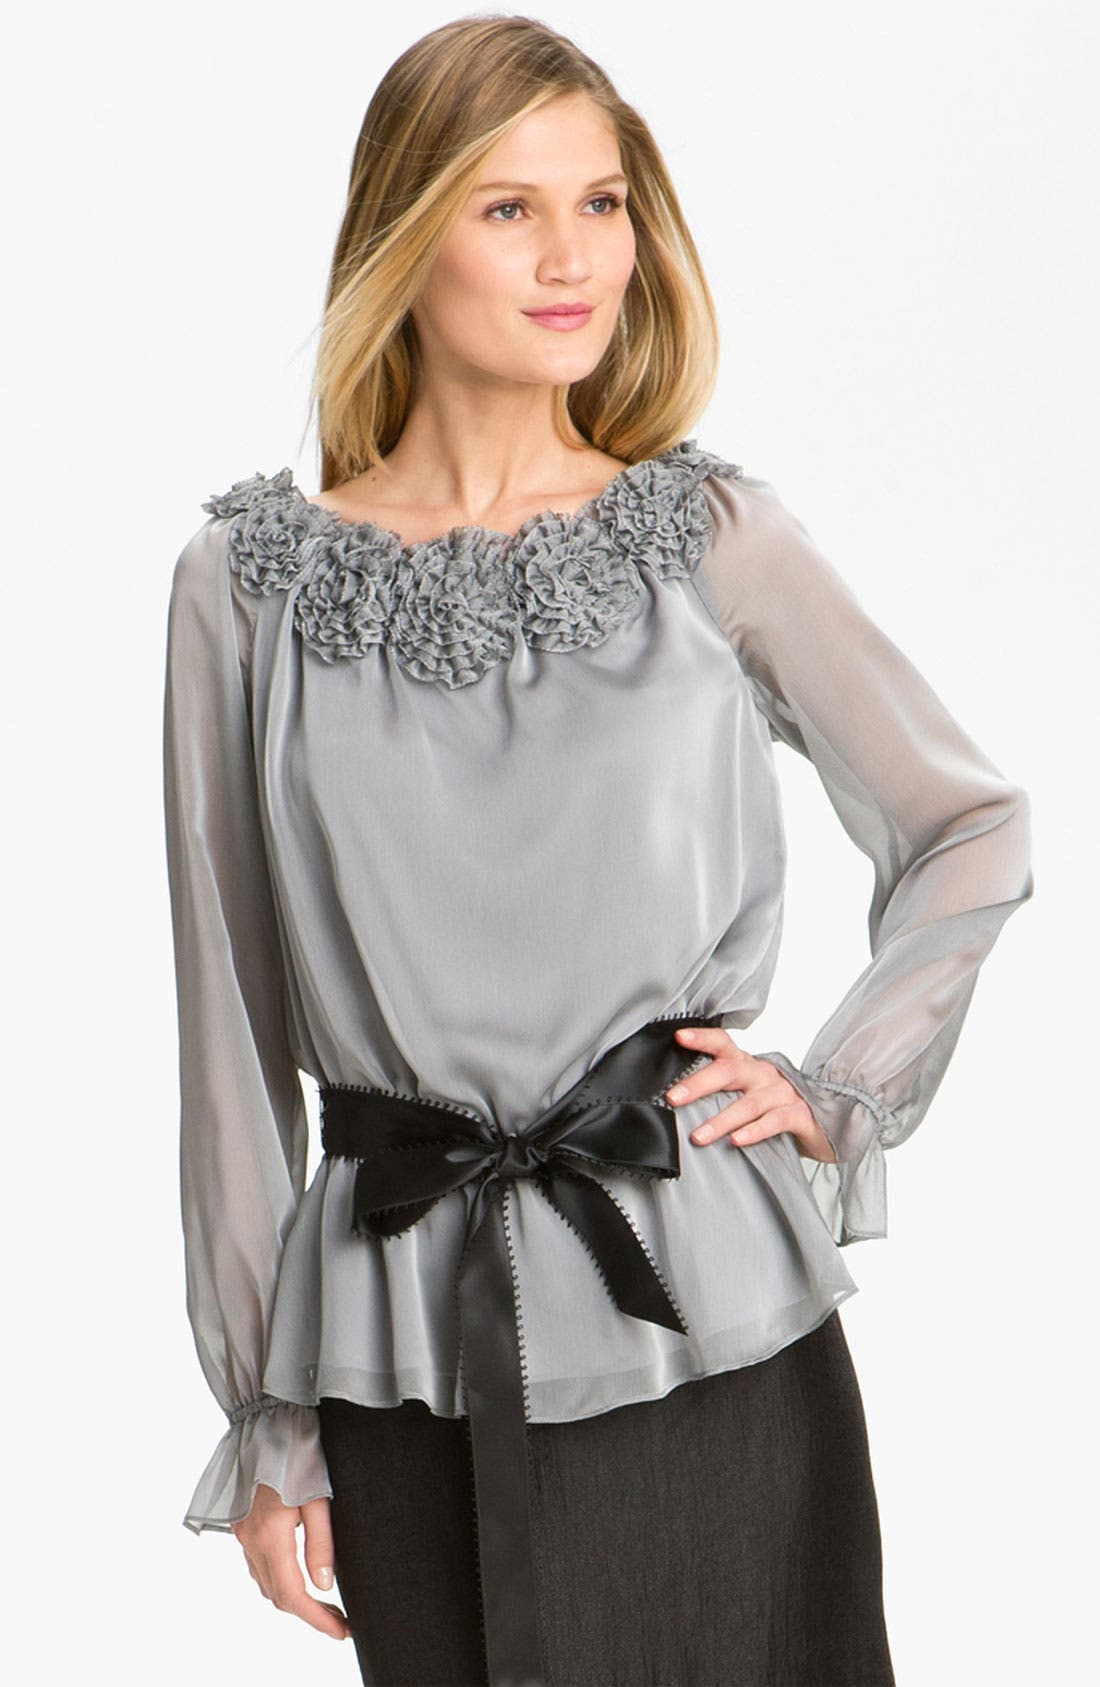 Alternate Image 1 Selected - Adrianna Papell Rosette Trim Chiffon Blouse (Petite)